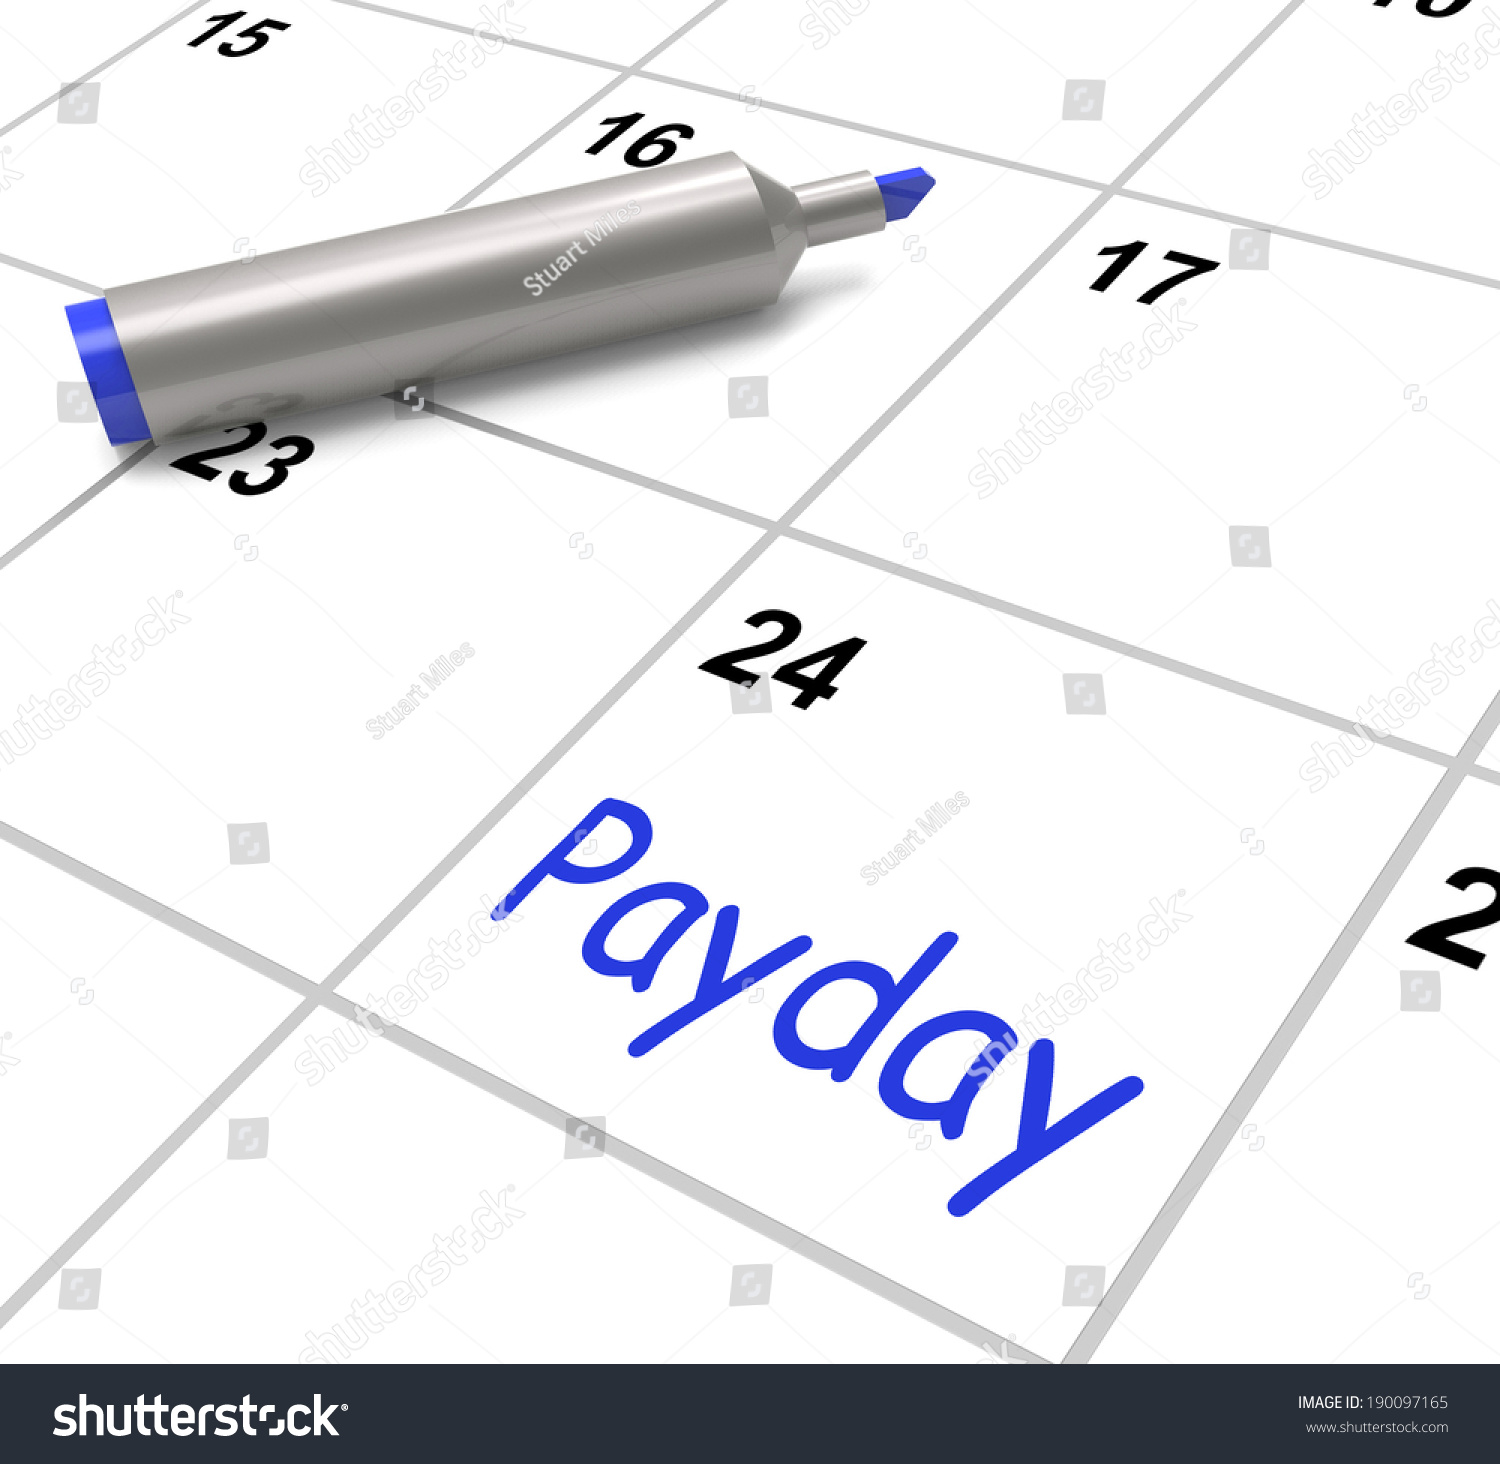 Calendar Photography Jobs : Payday calendar showing salary or wages for employment